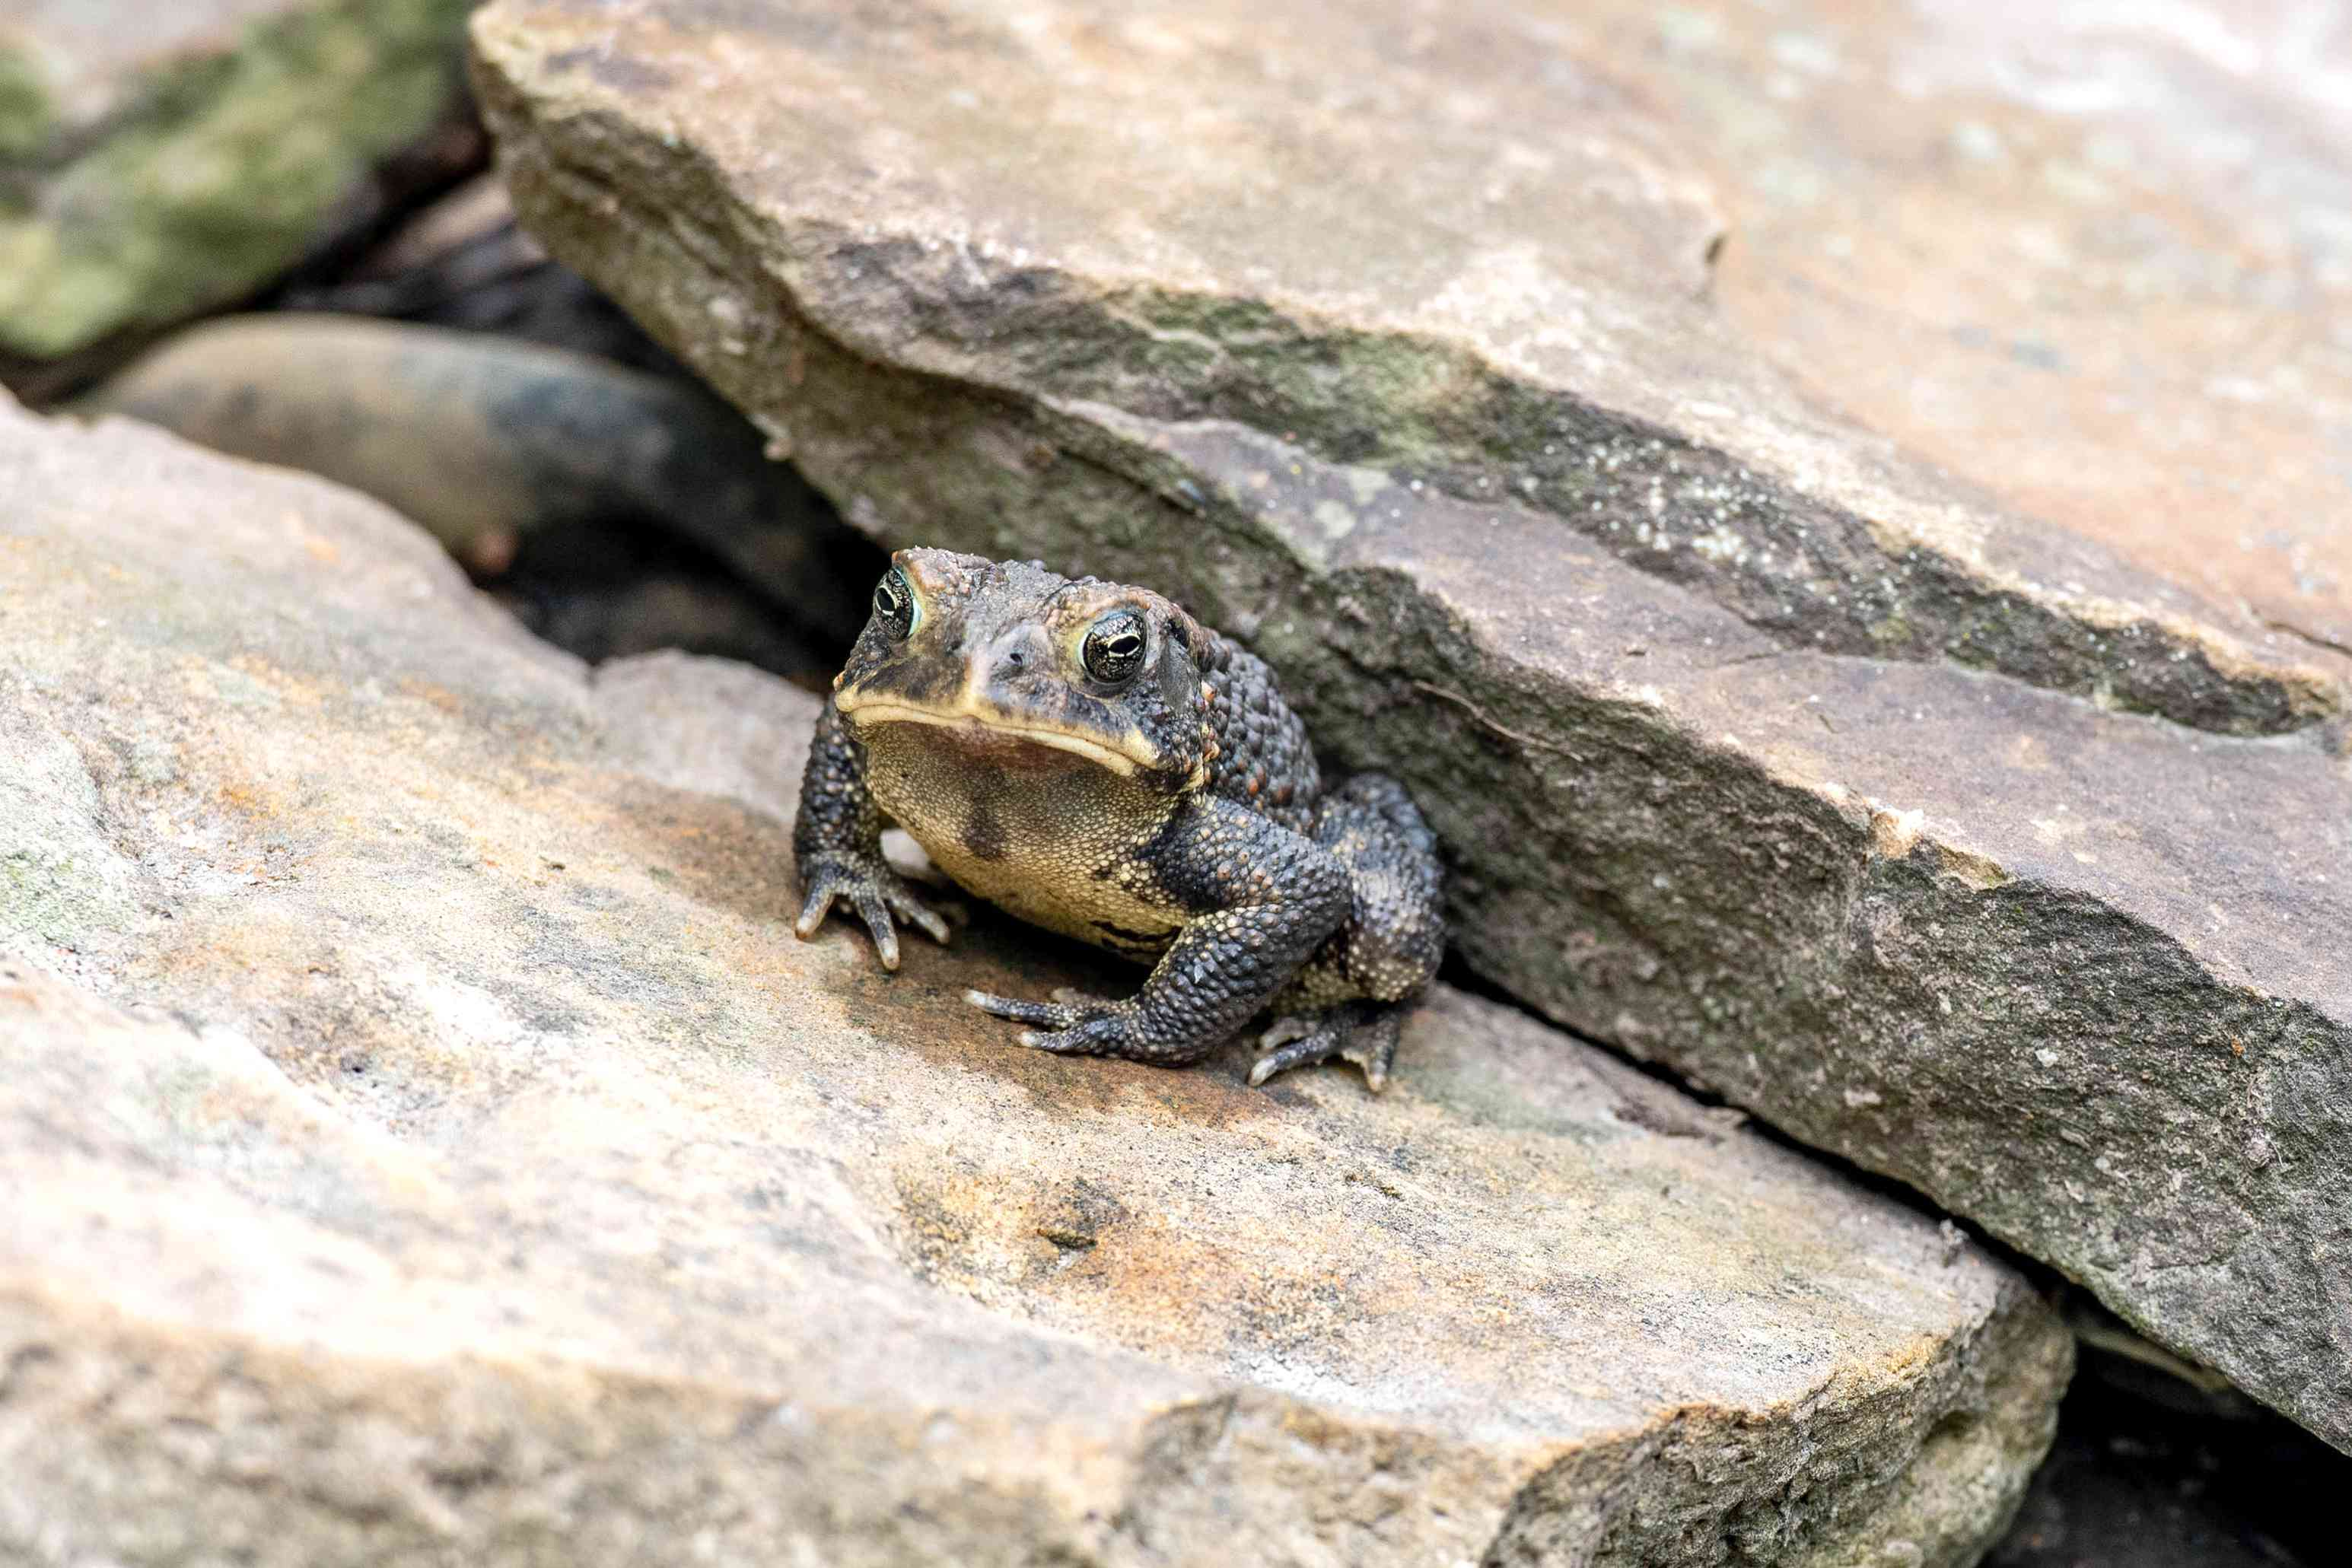 Black and yellow toad sitting on rock slabs